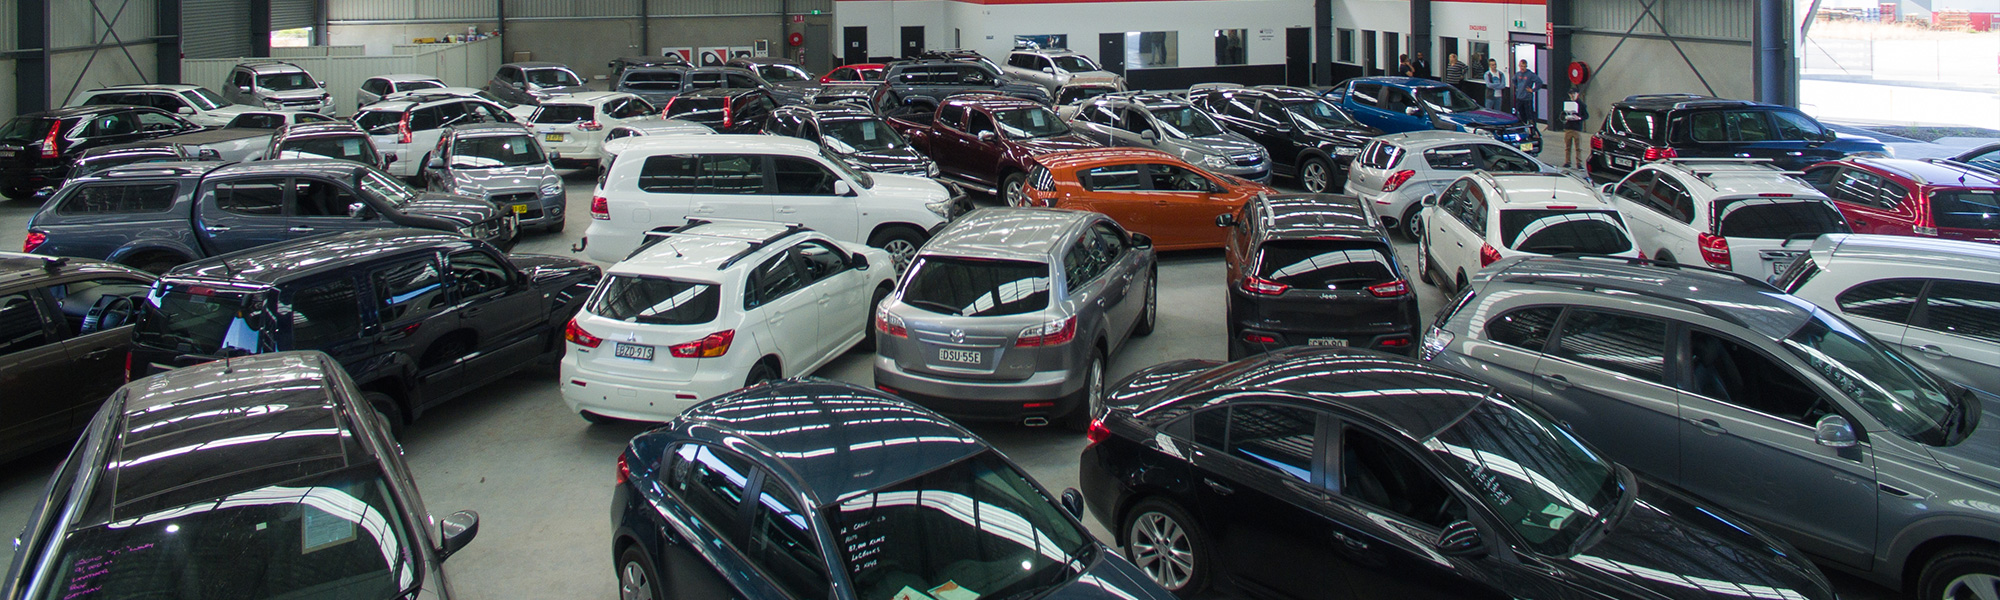 Motor Vehicle Wholesale